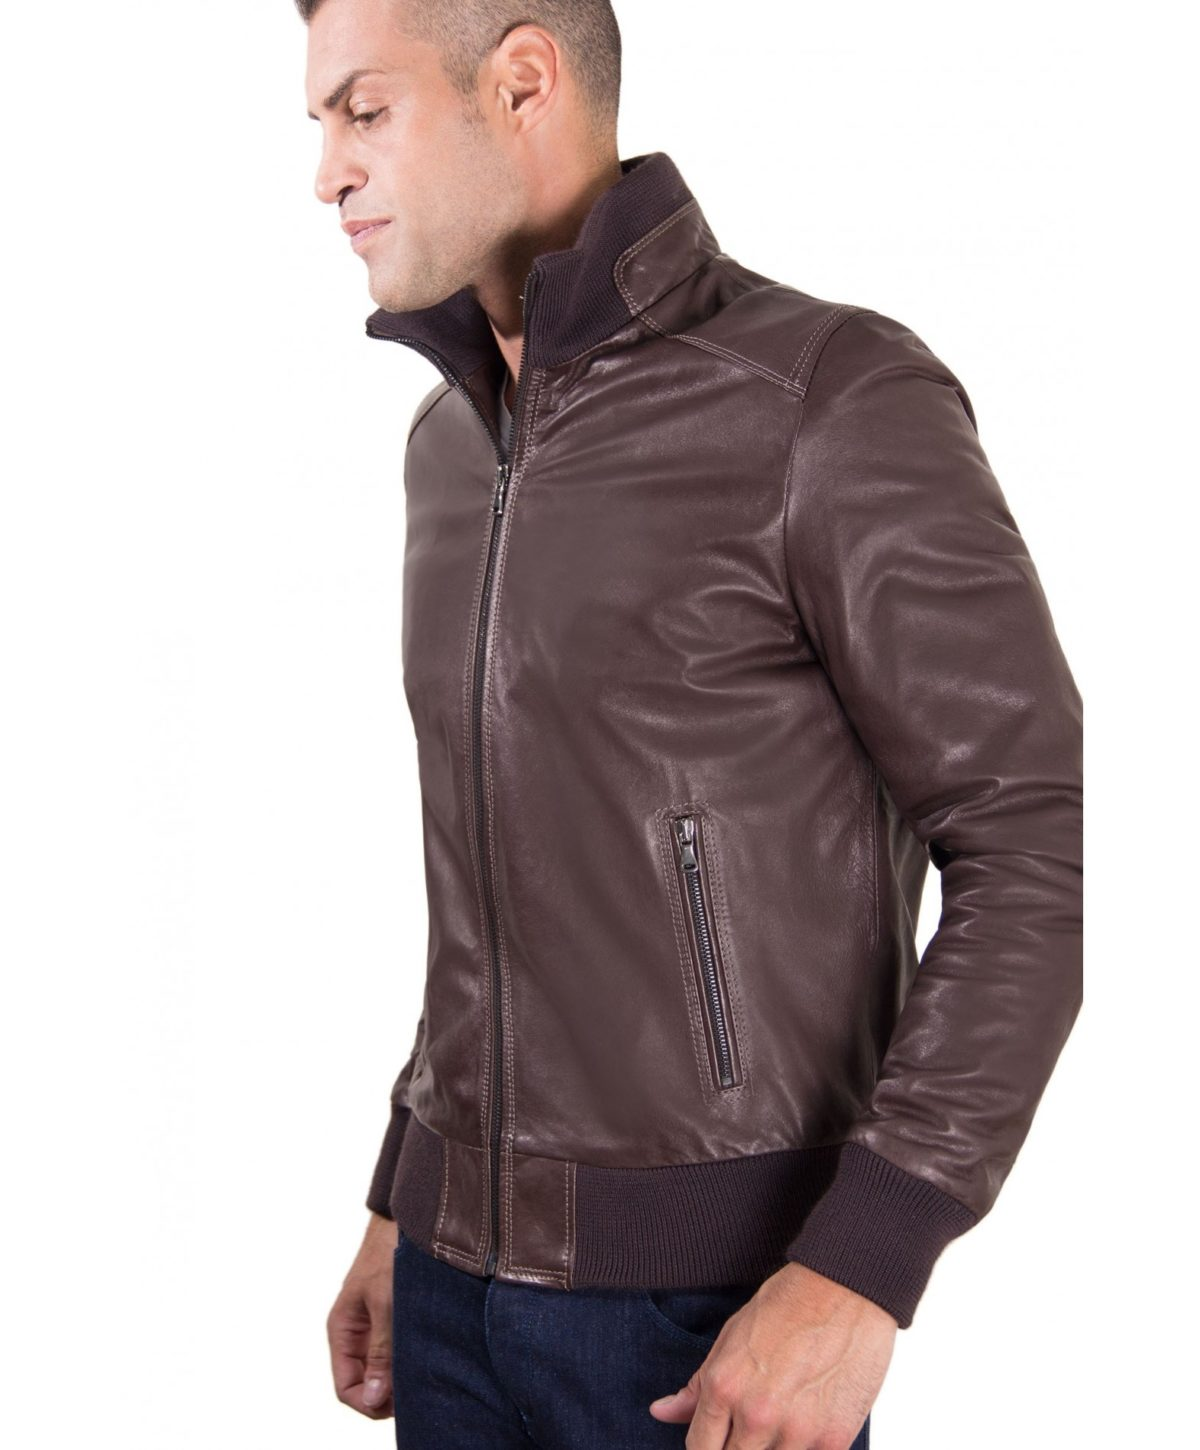 men-s-leather-jacket-contrasting-stitching-style-bomber-dark-brown-color-bomber (1)